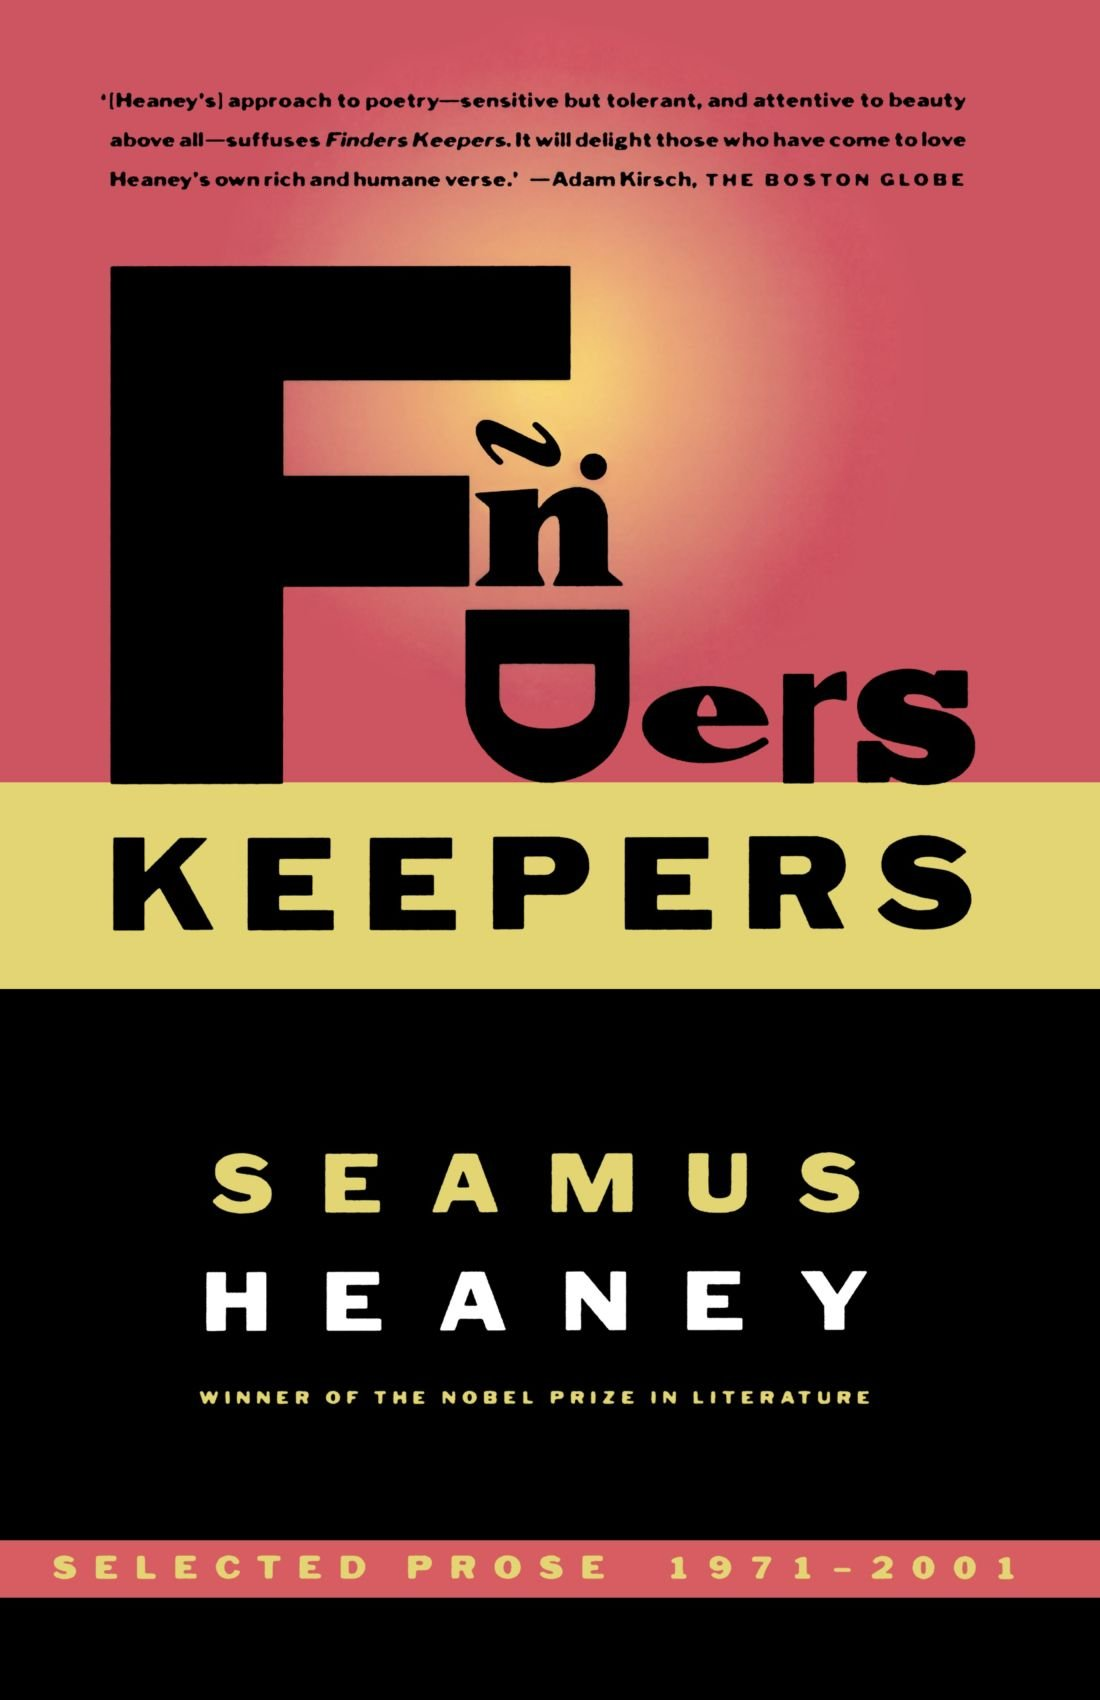 seamus heaney essays seamus heaney an advancement of learning  com finders keepers selected prose com finders keepers selected prose 1971 2001 9780374528782 seamus heaney books